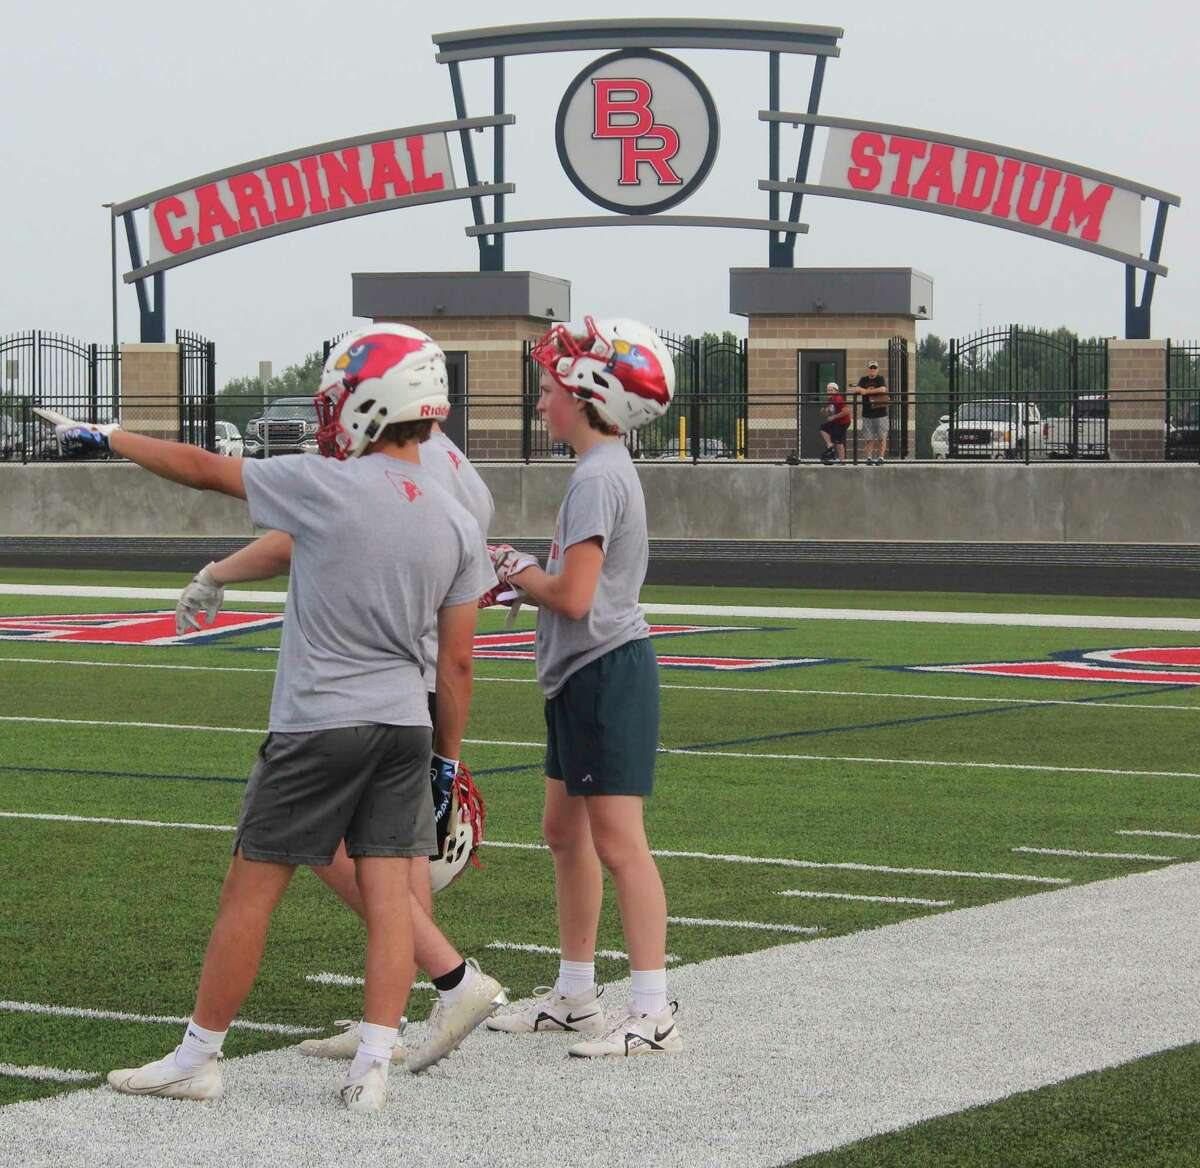 New turf, same team: With the recent completion of Cardinal Stadium, the Big Rapids football team now has the ability to train on a brand new terrain all its own. (Pioneer photo/Joe Judd)